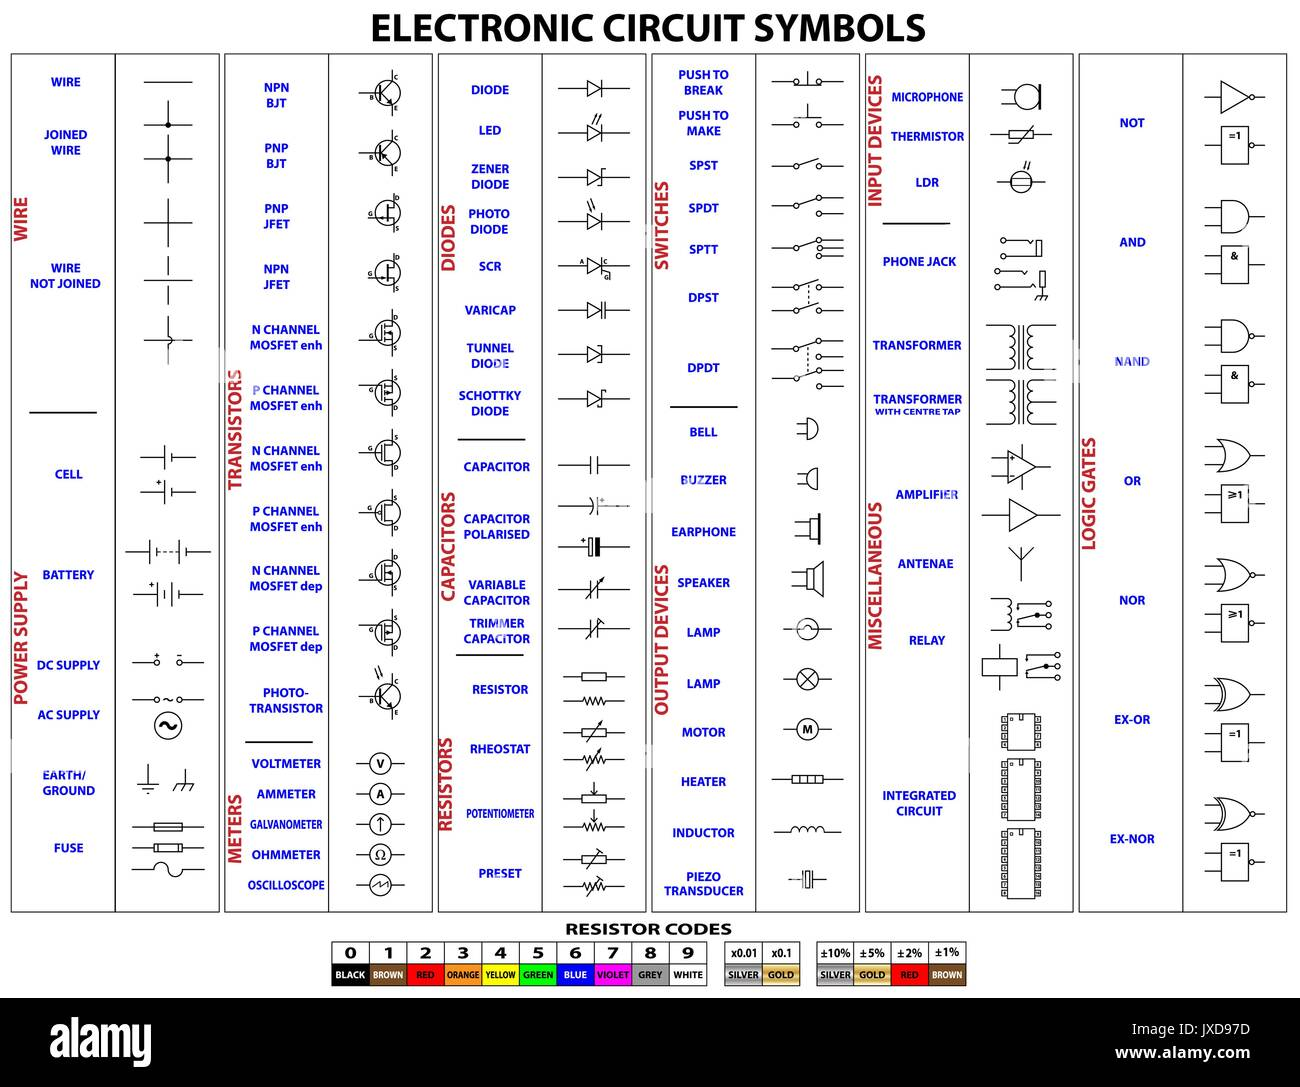 Complete set of electronic circuit symbols and resistor codes Stock ...